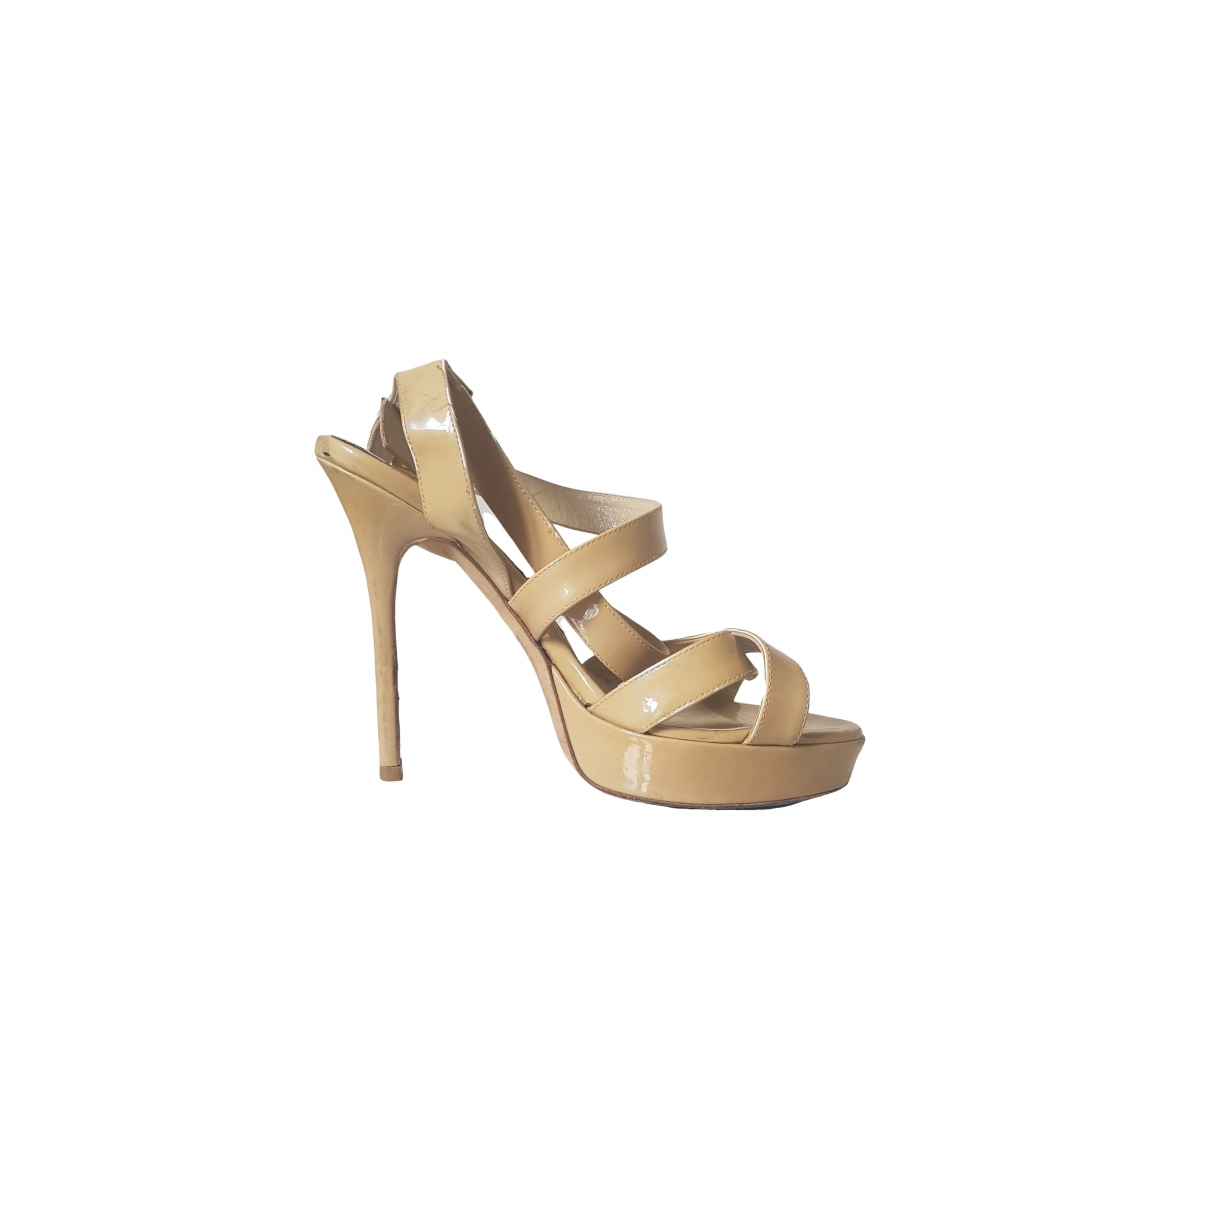 Jimmy Choo \N Beige Patent leather Sandals for Women 37 EU